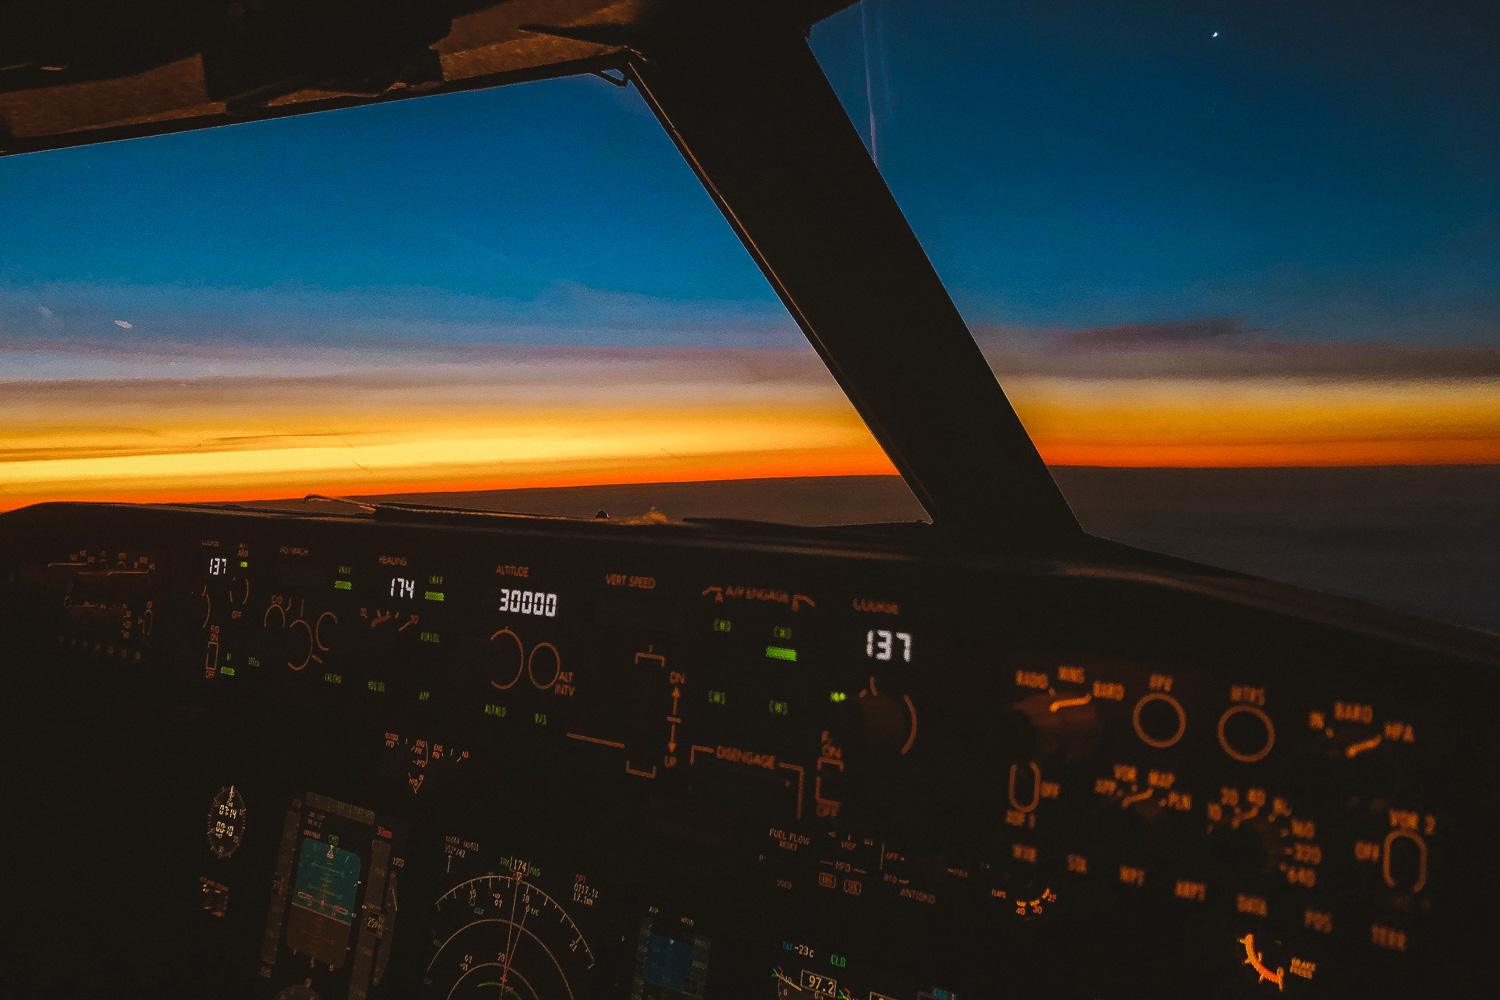 inside the cockpit during sunset